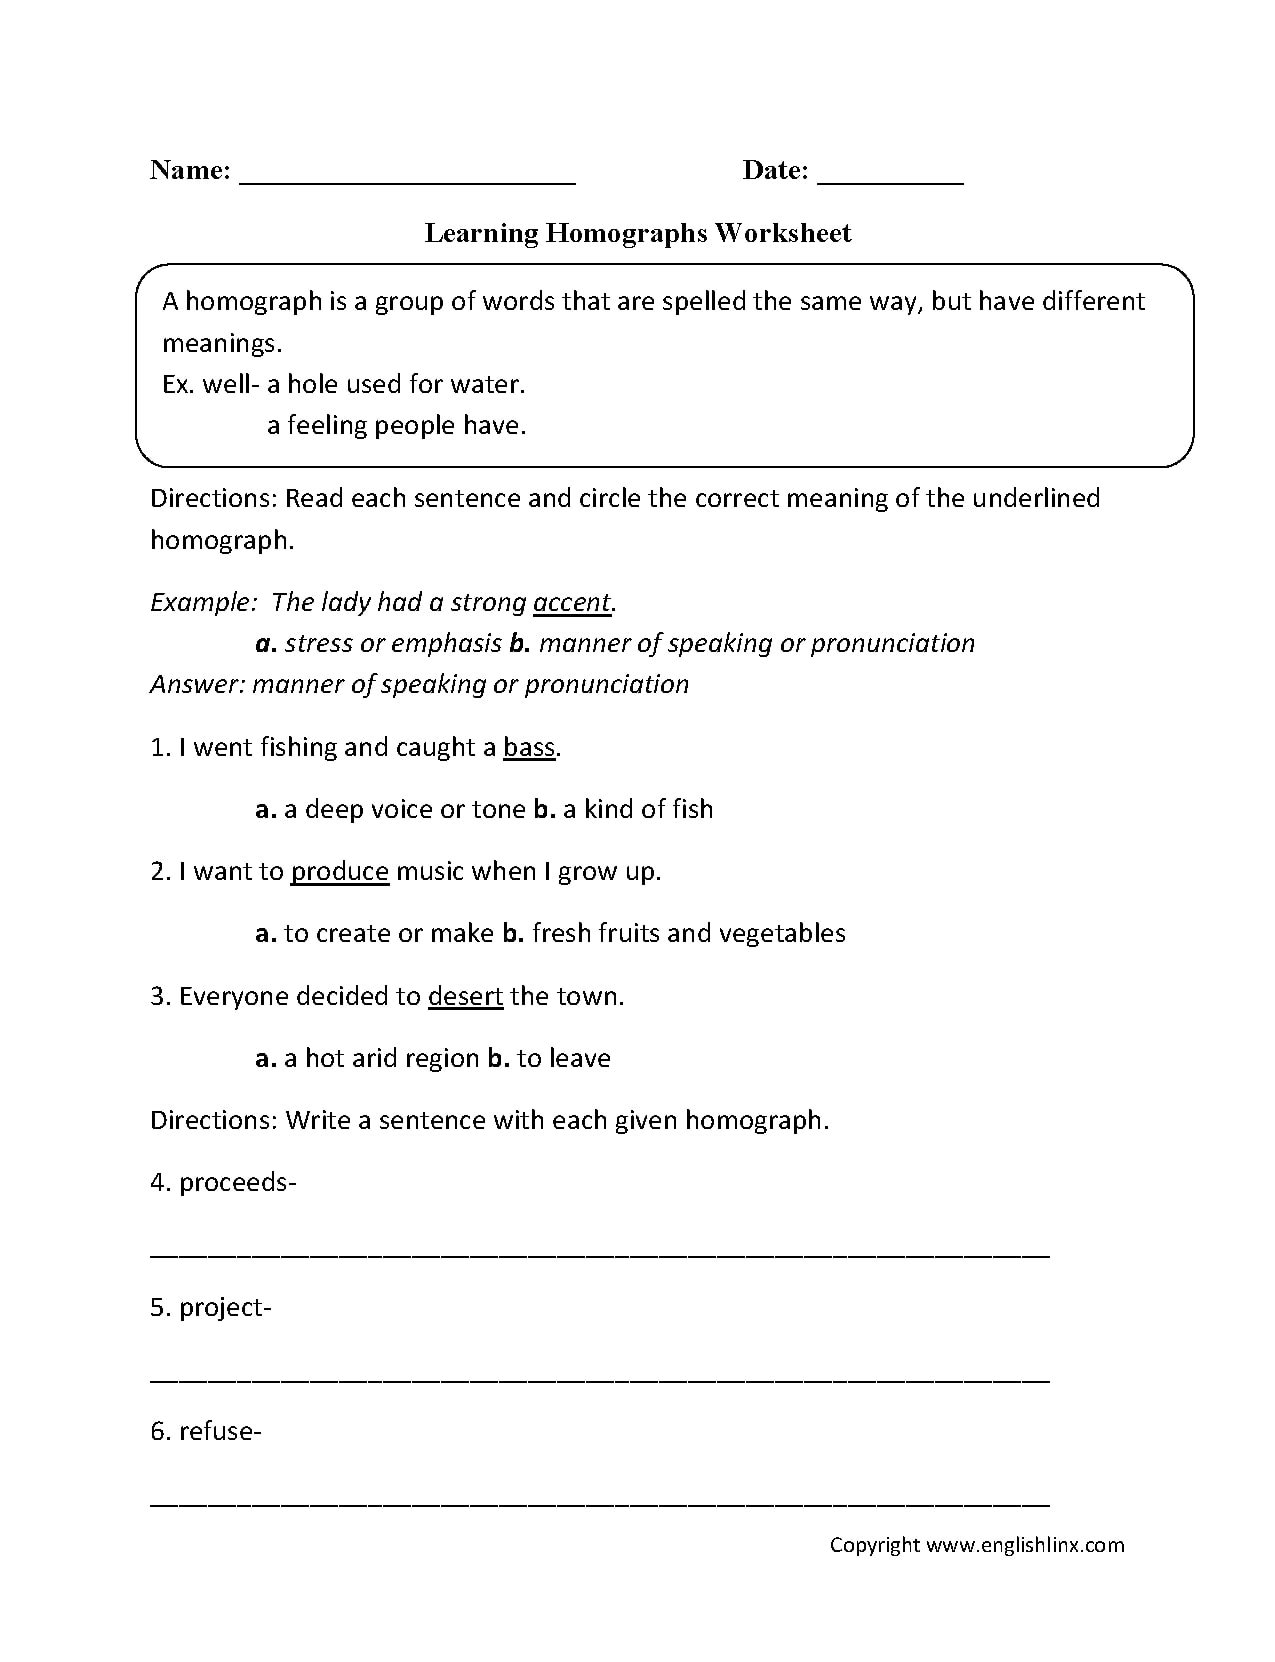 learning homographs worksheet example